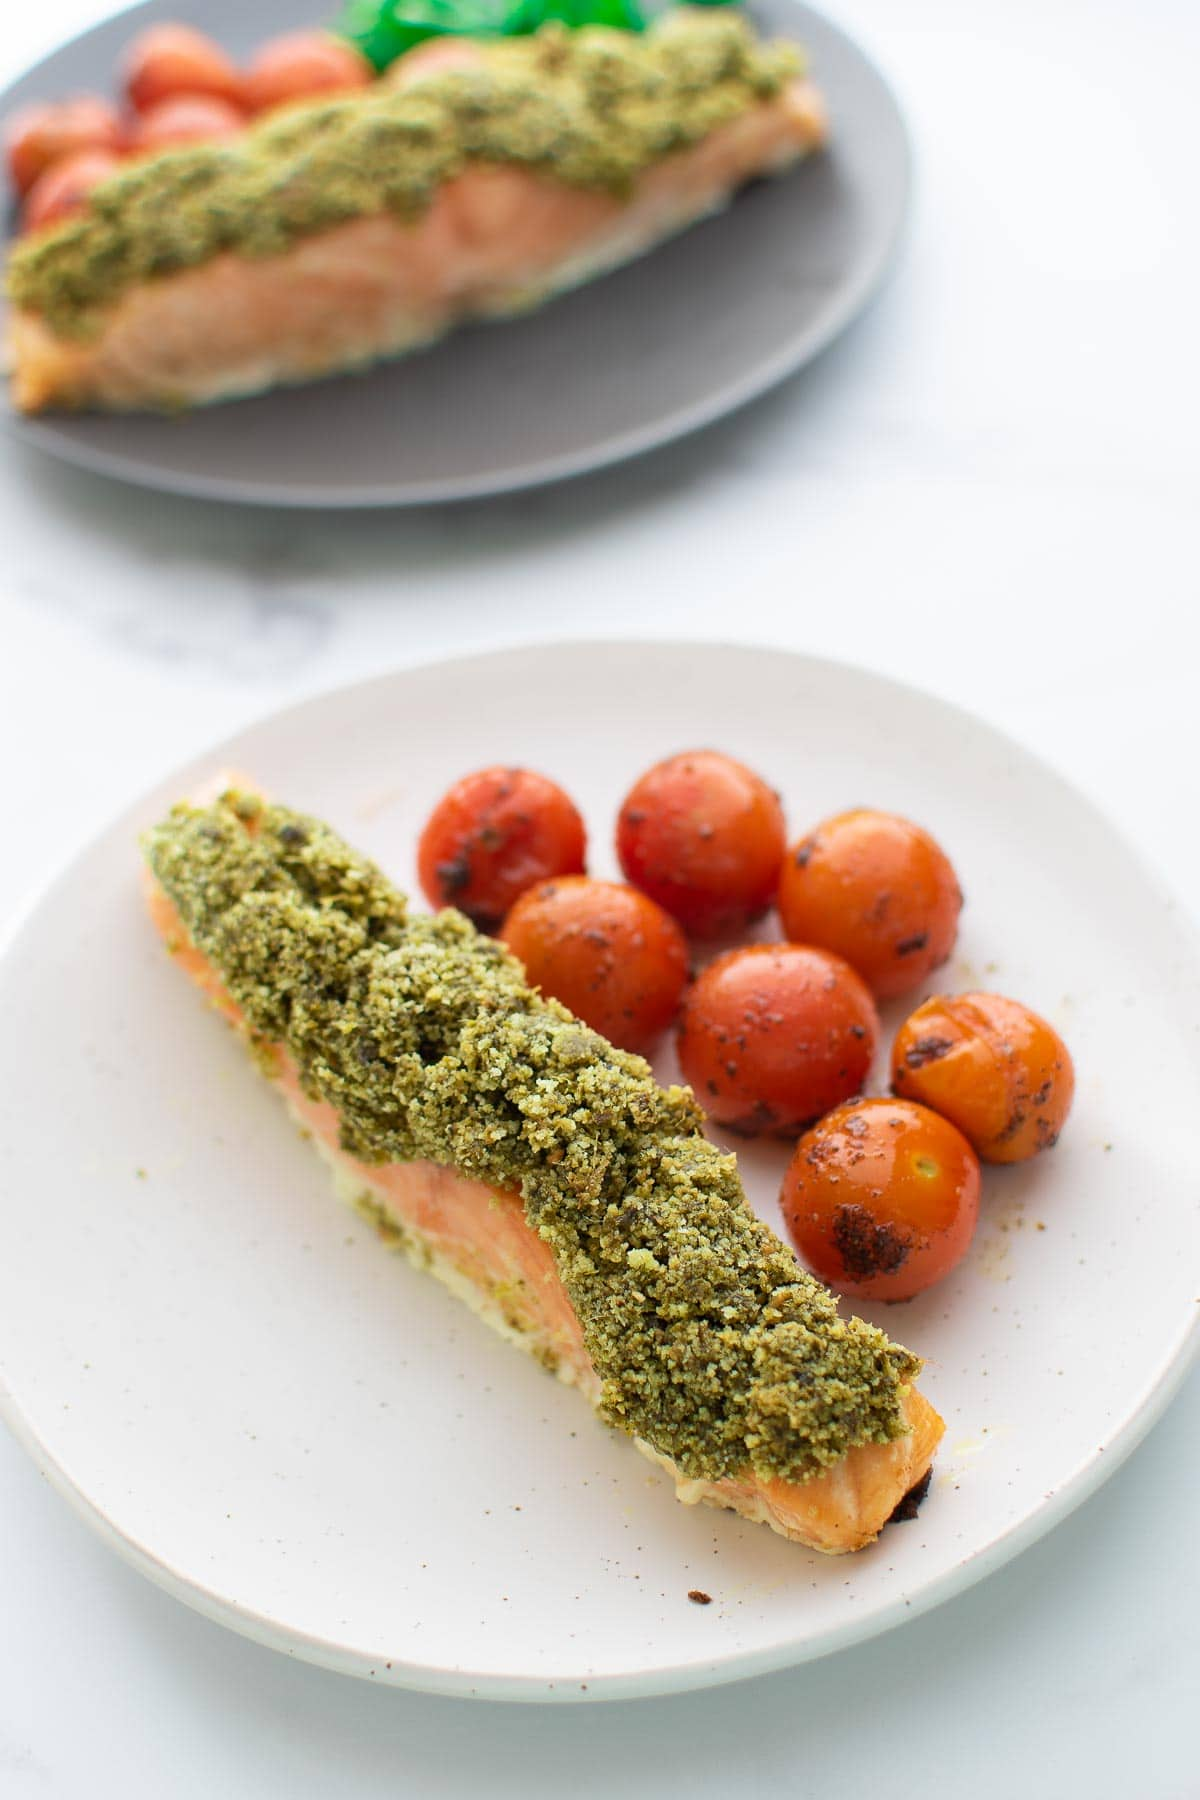 Pesto crusted salmon on a plate with cherry tomatoes on the side.